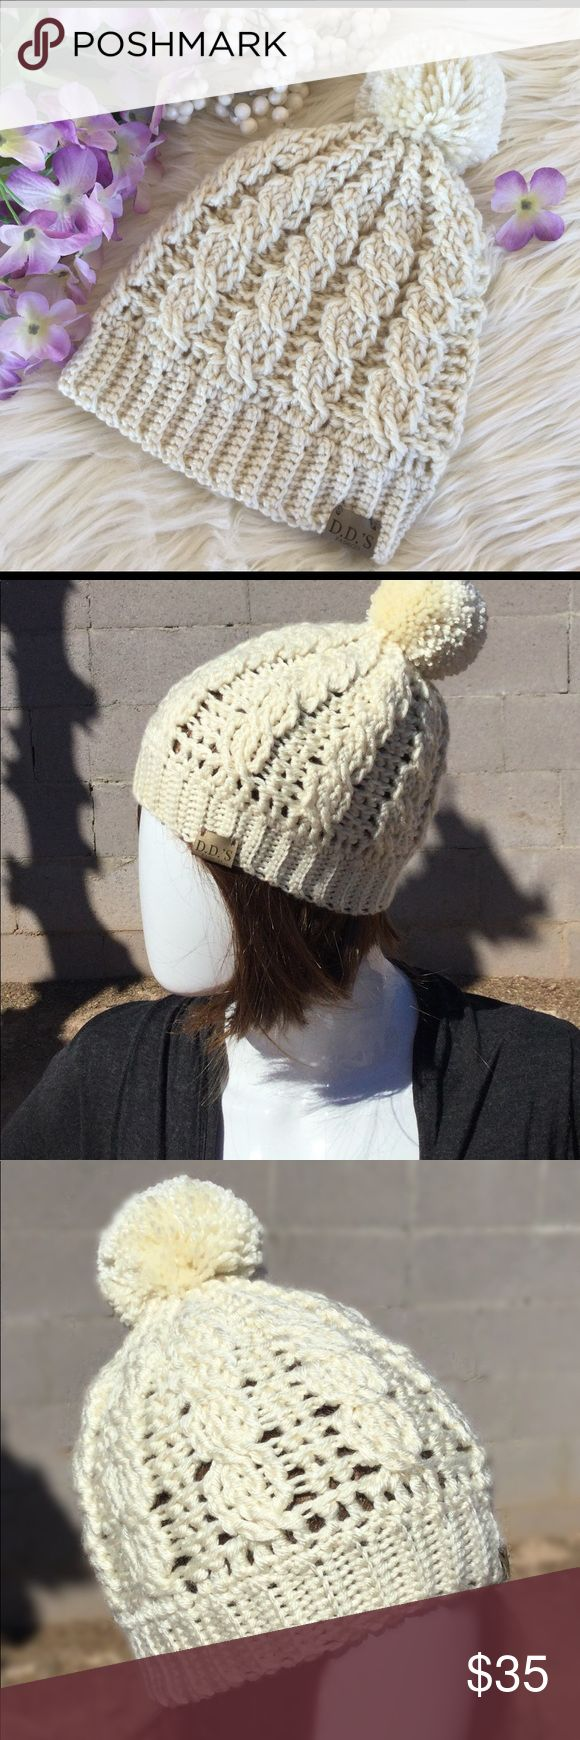 "Crochet Cable Pompom Hat Baby, it's still cold outside! Spring is showing itself to be much cooler this year. We haven't seen the end of winter just yet! You will love this adorable hat. It makes a wonderful gift, and fits crowns 20-23""! Great for that lady in your life that wants to stay warm and cozy! This hat can be custom made in your choice of color (for a custom fee of $5) by using the color swatch provided in the pics! Don't be fooled by cheap goods, buy boutique! You will be glad you…"